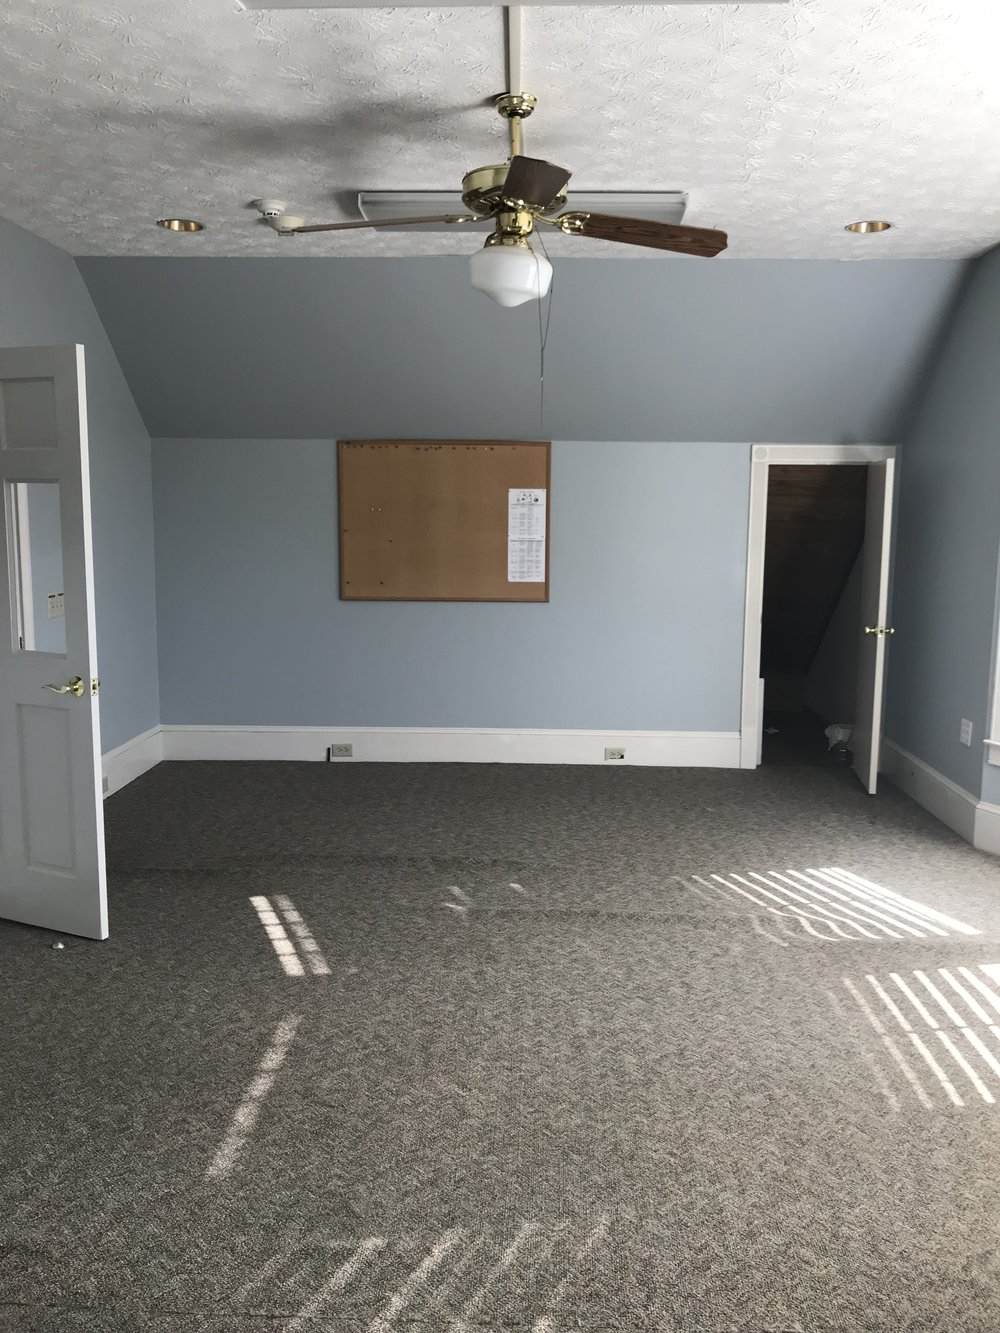 This is the room which will be converted into our filming studio.  Needs some TLC, some furniture, fixtures, and some basic video equipment and lighting.